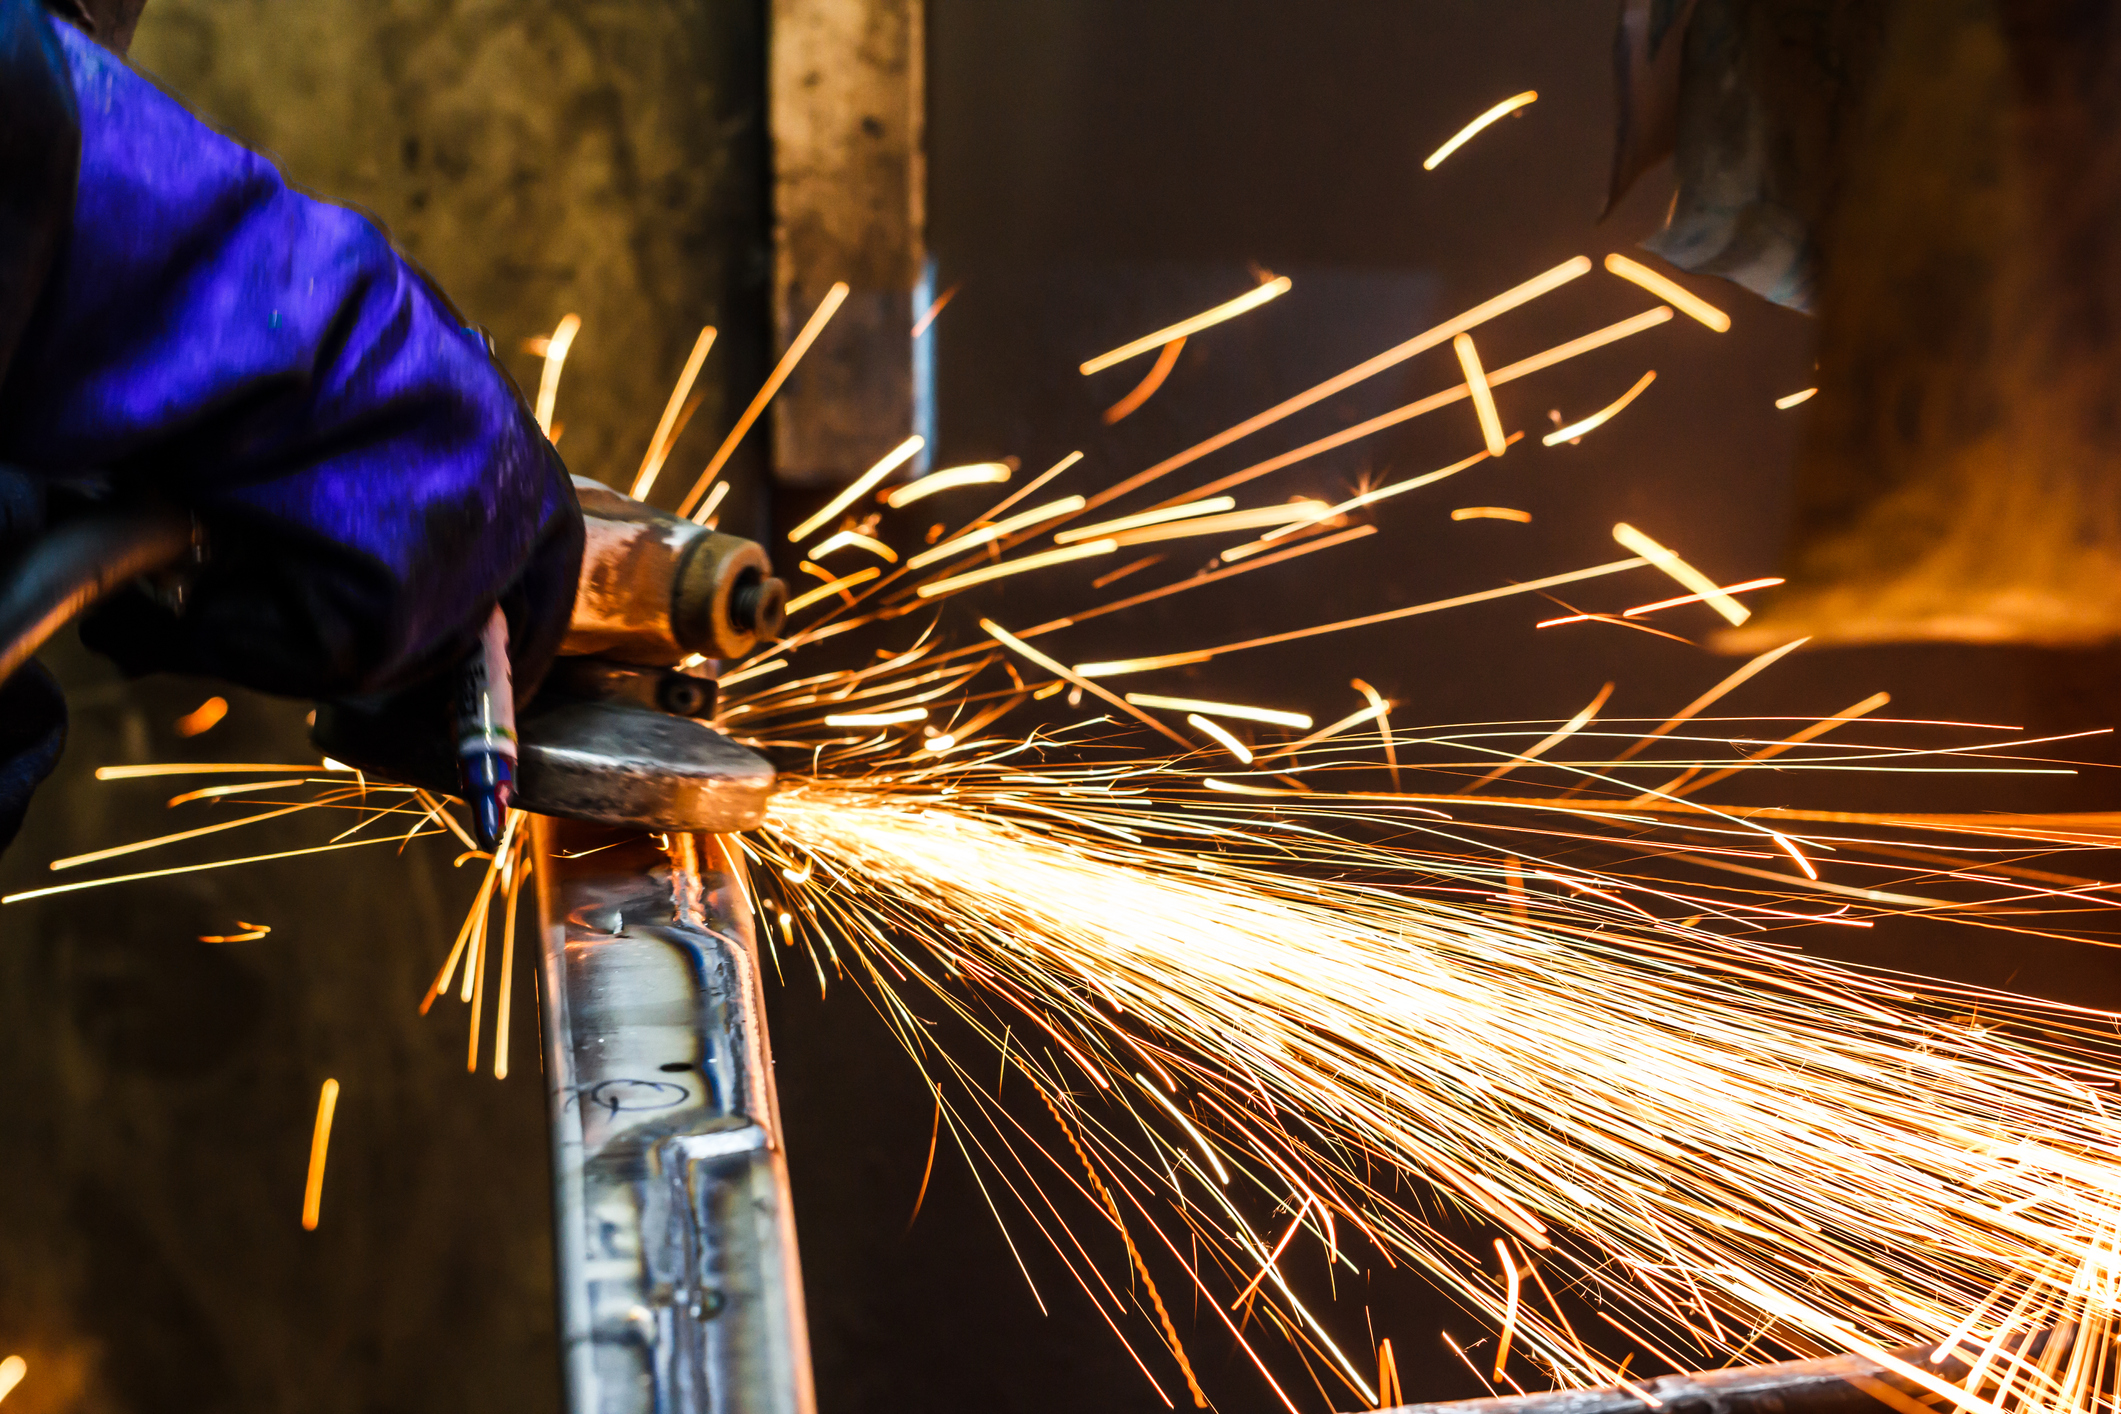 grinding machine sparks